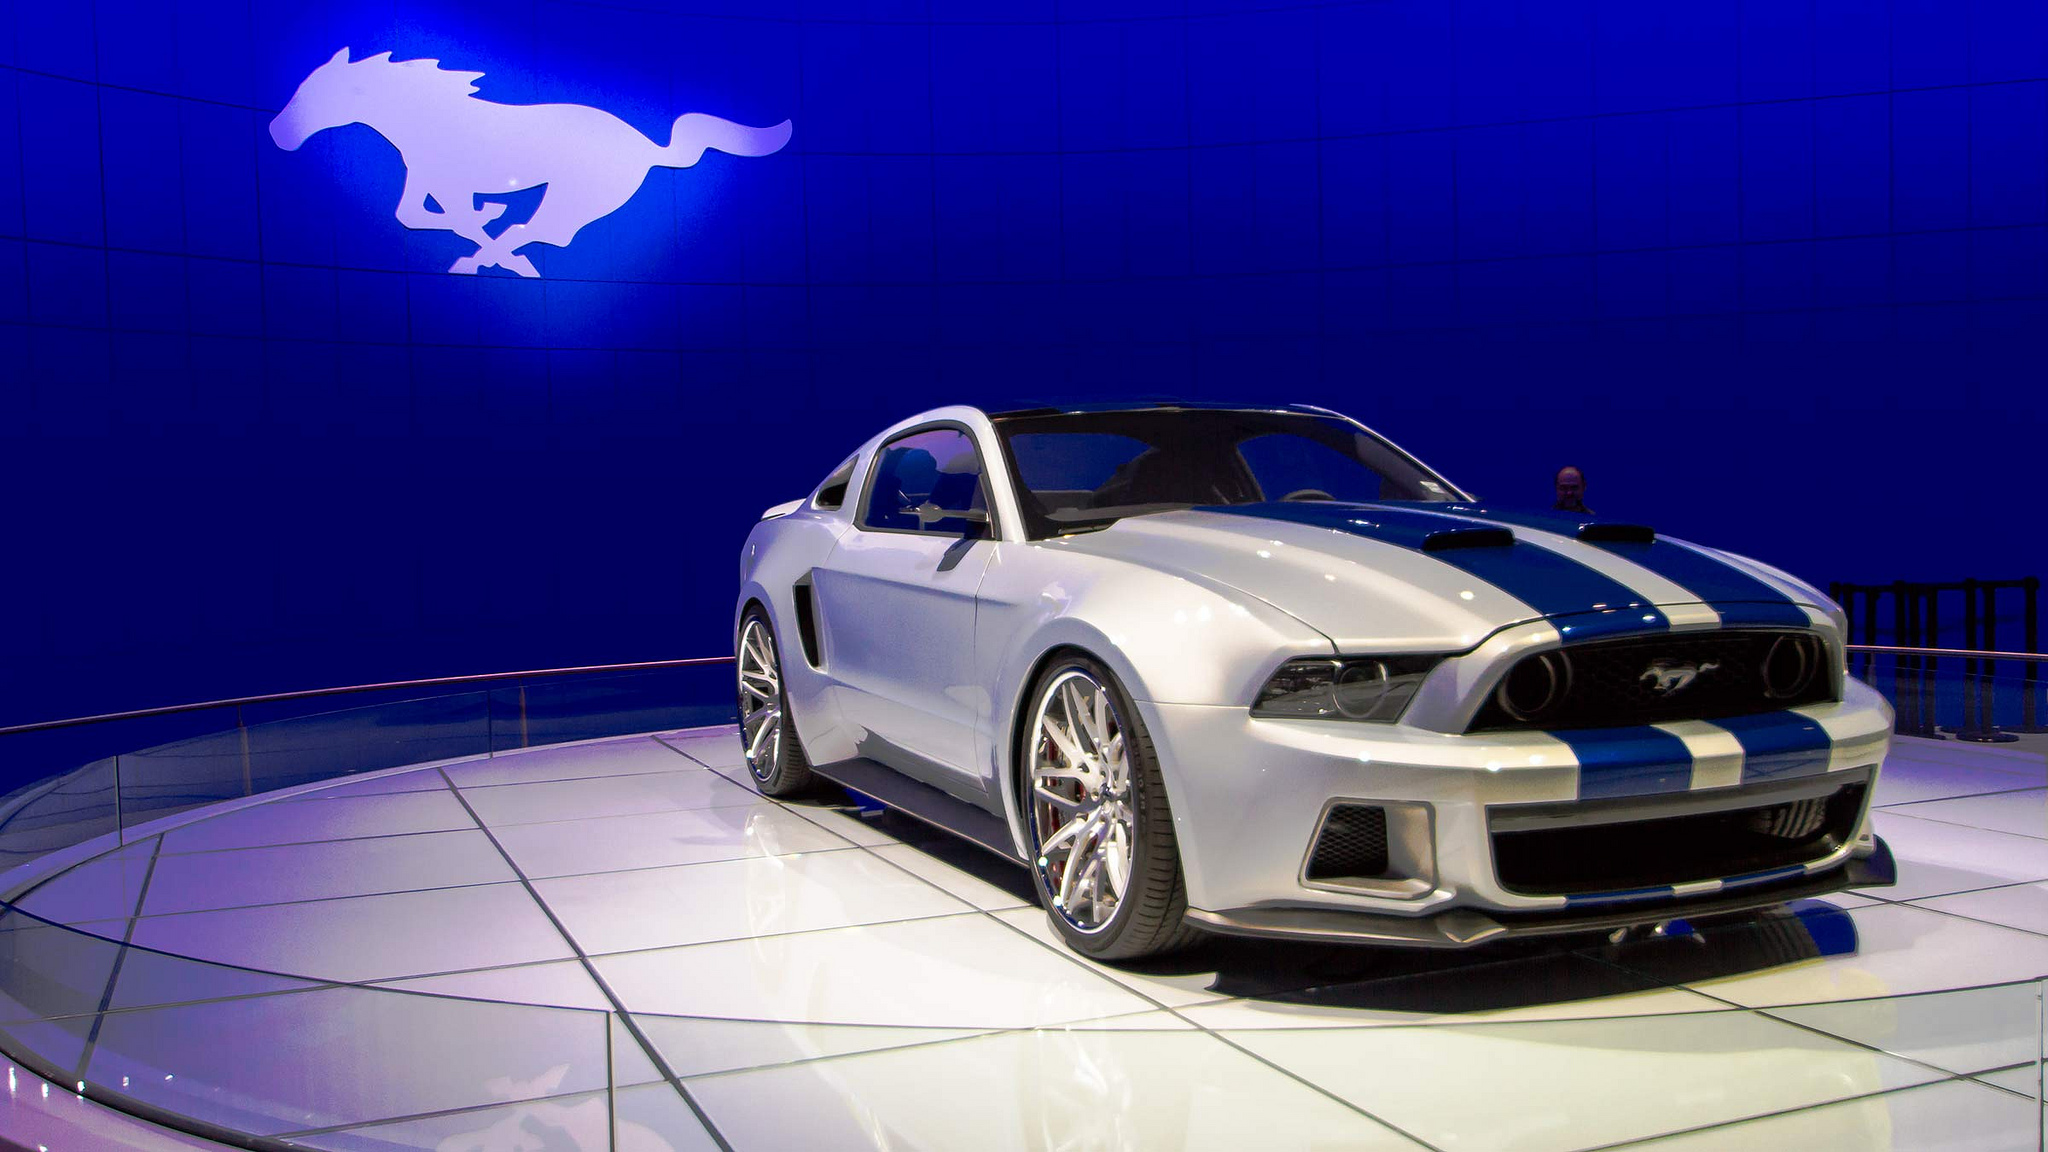 pics for gt need for speed mustang wallpaper